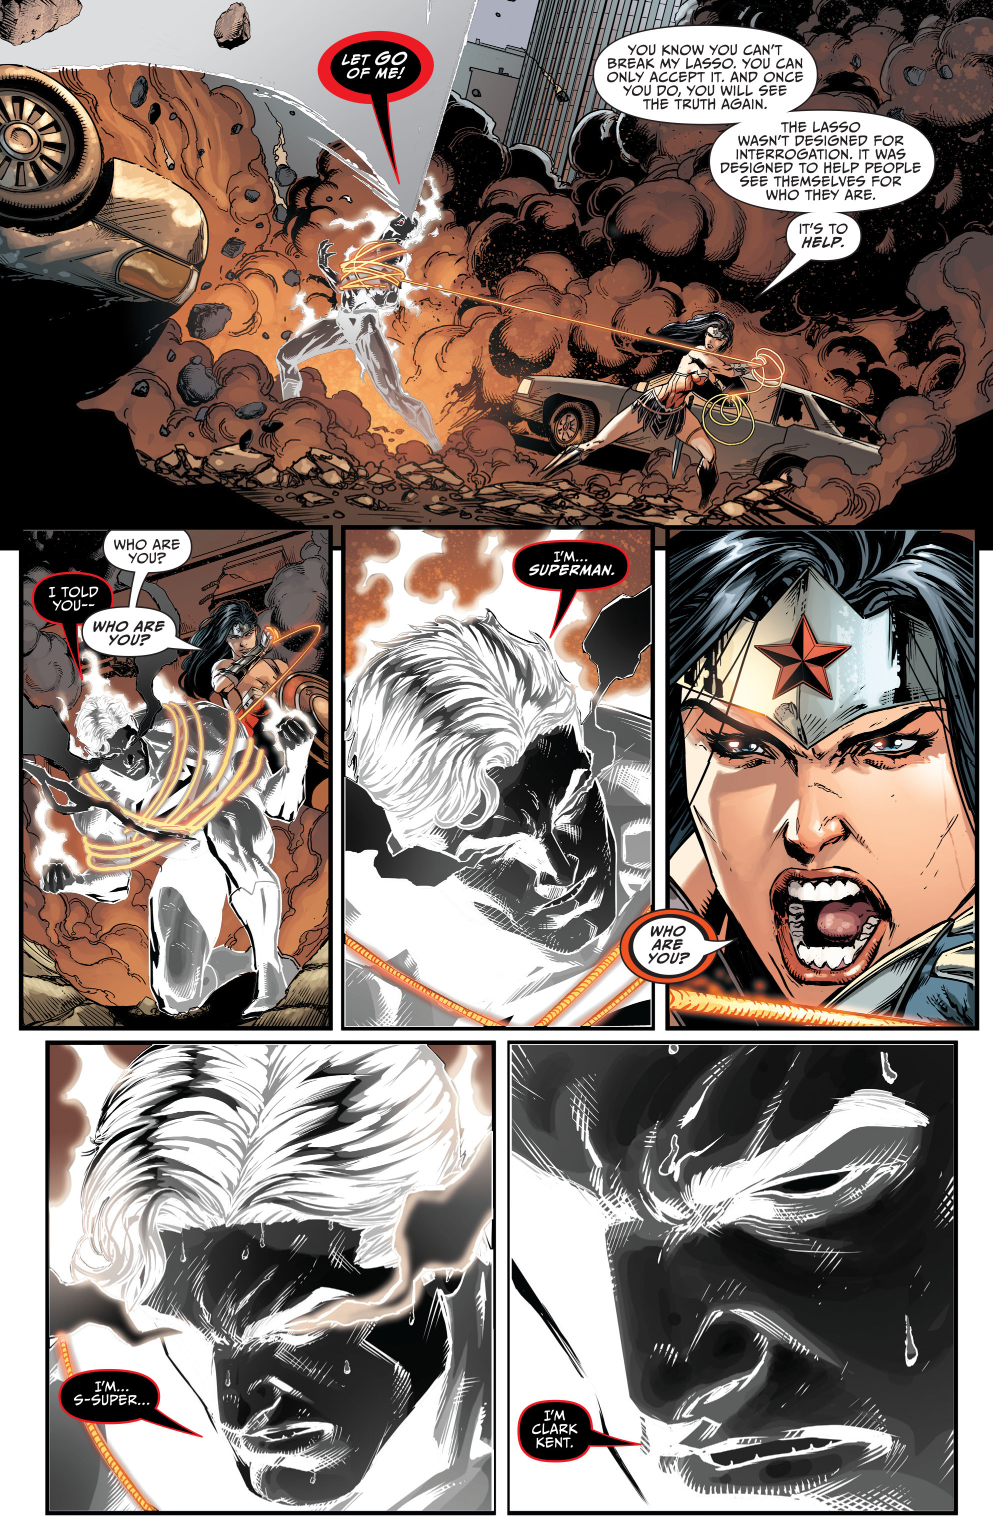 ... superman vs wonder woman (darkseid war)